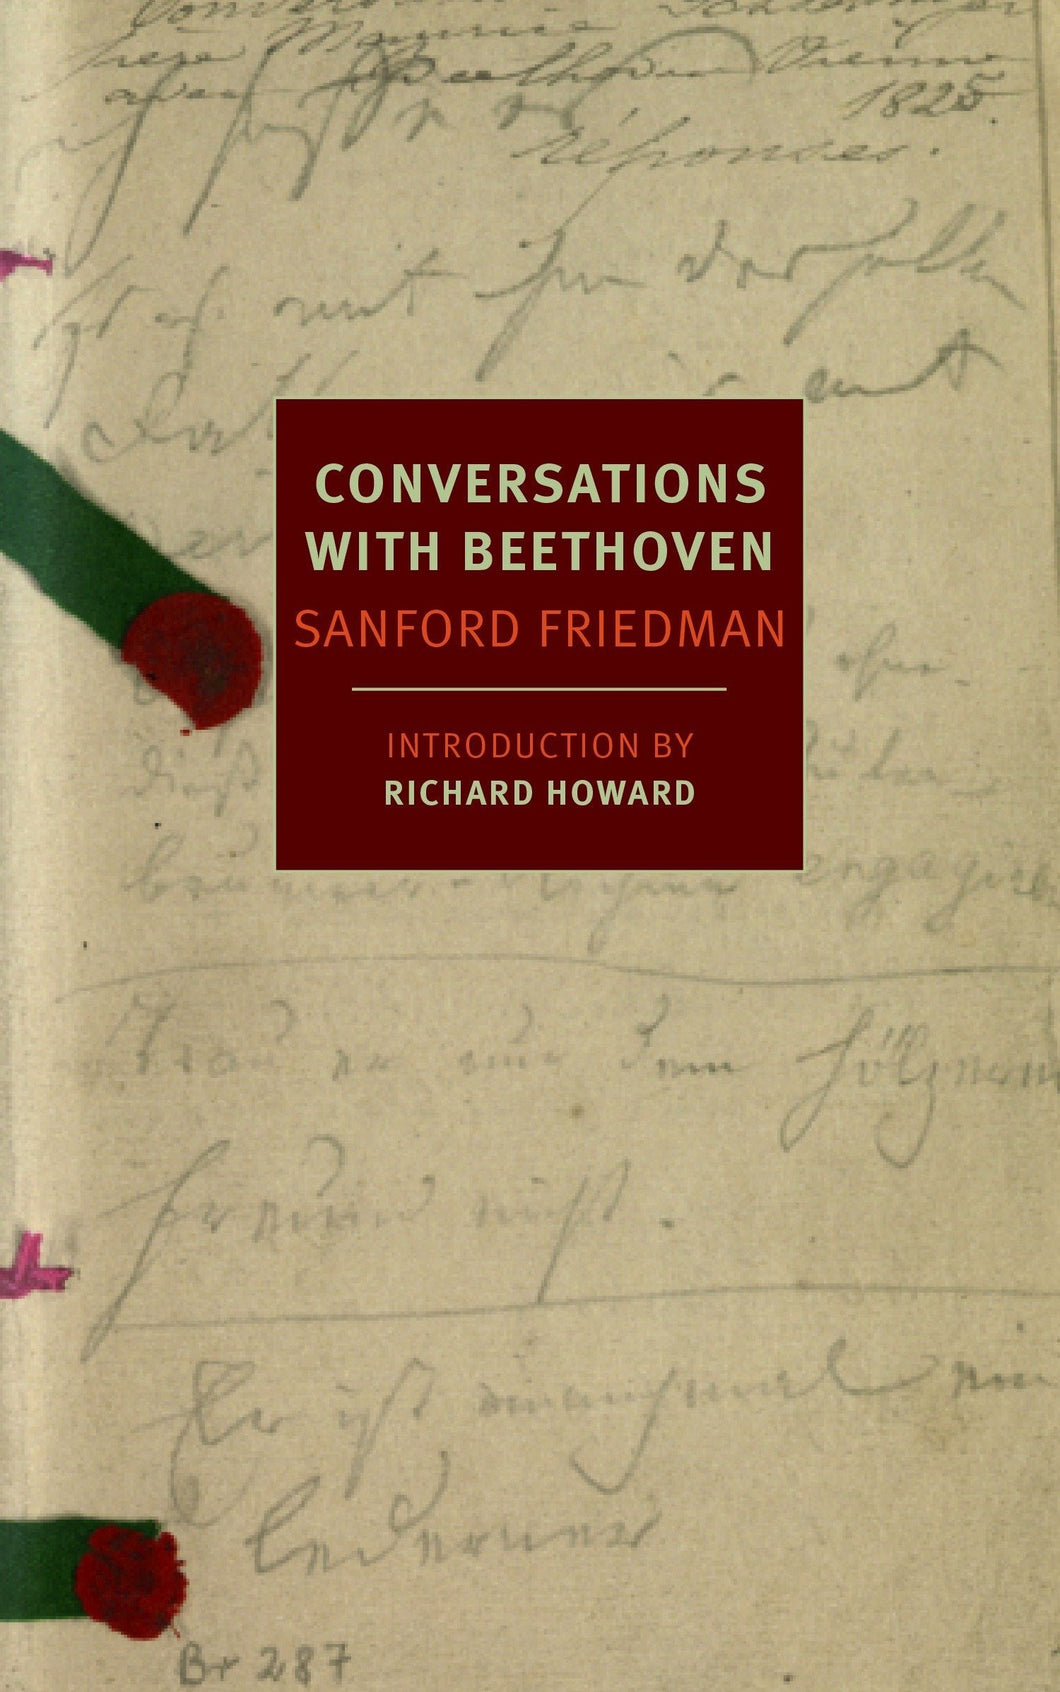 Conversations with Beethoven by Sanford Friedman